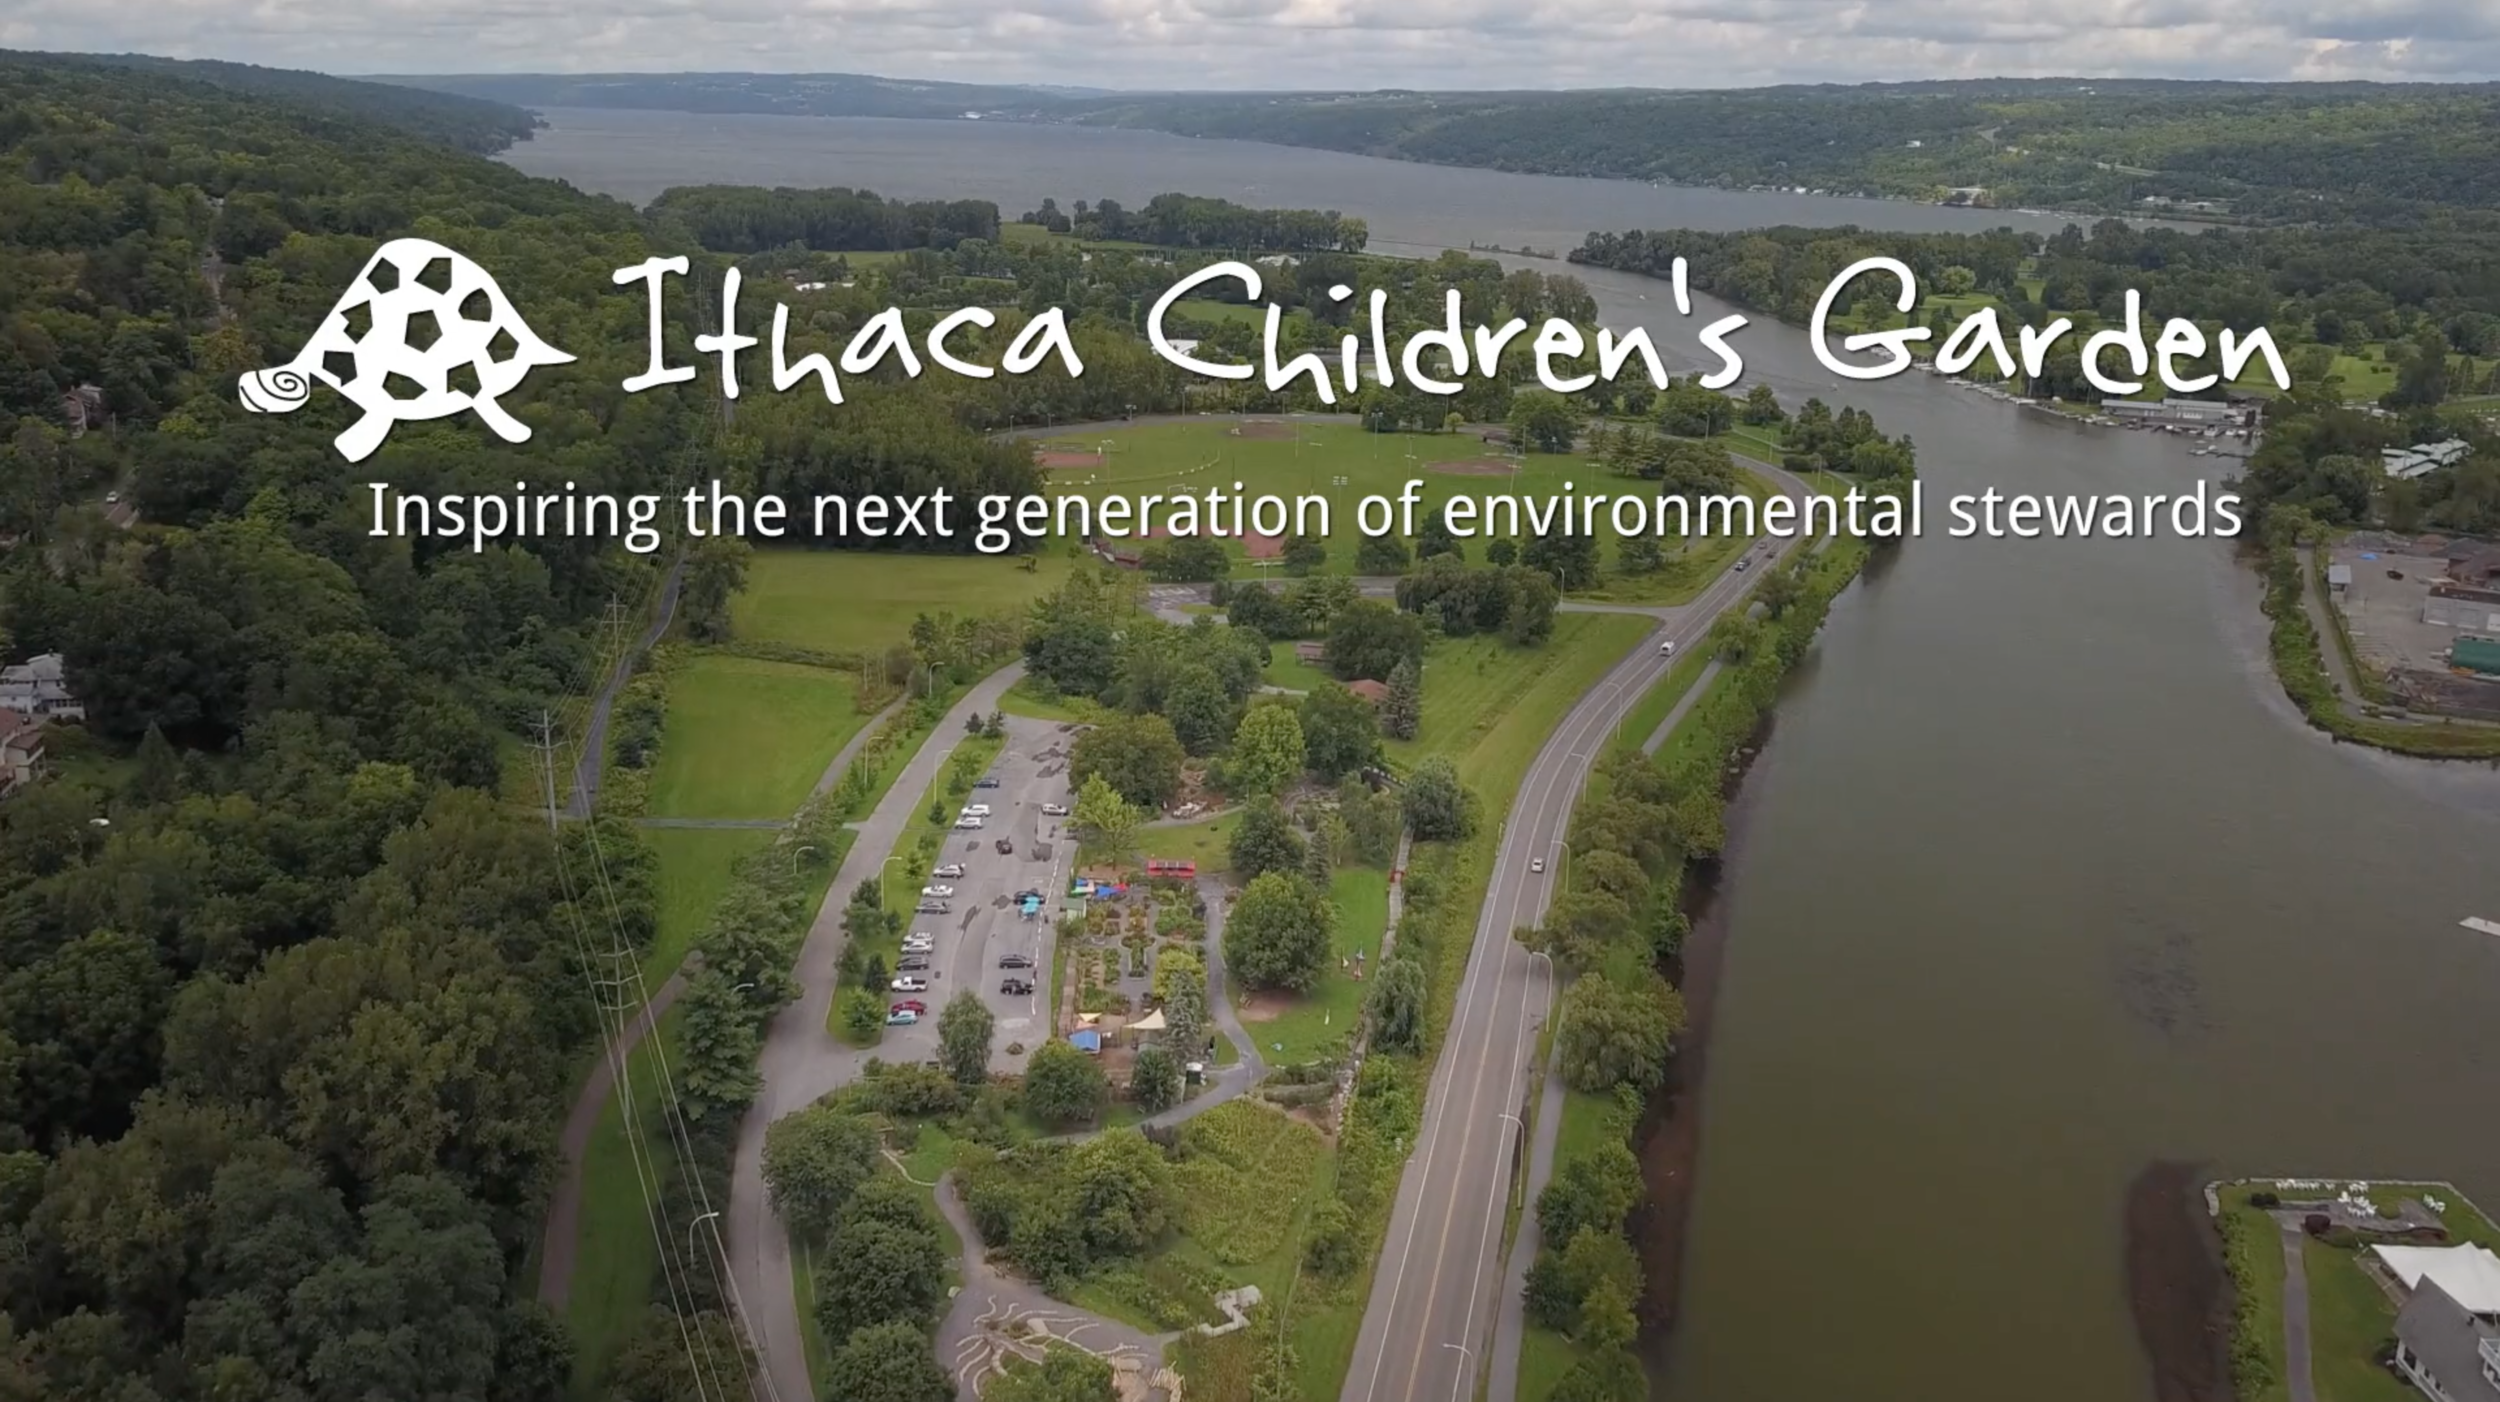 Ithaca Children's Garden